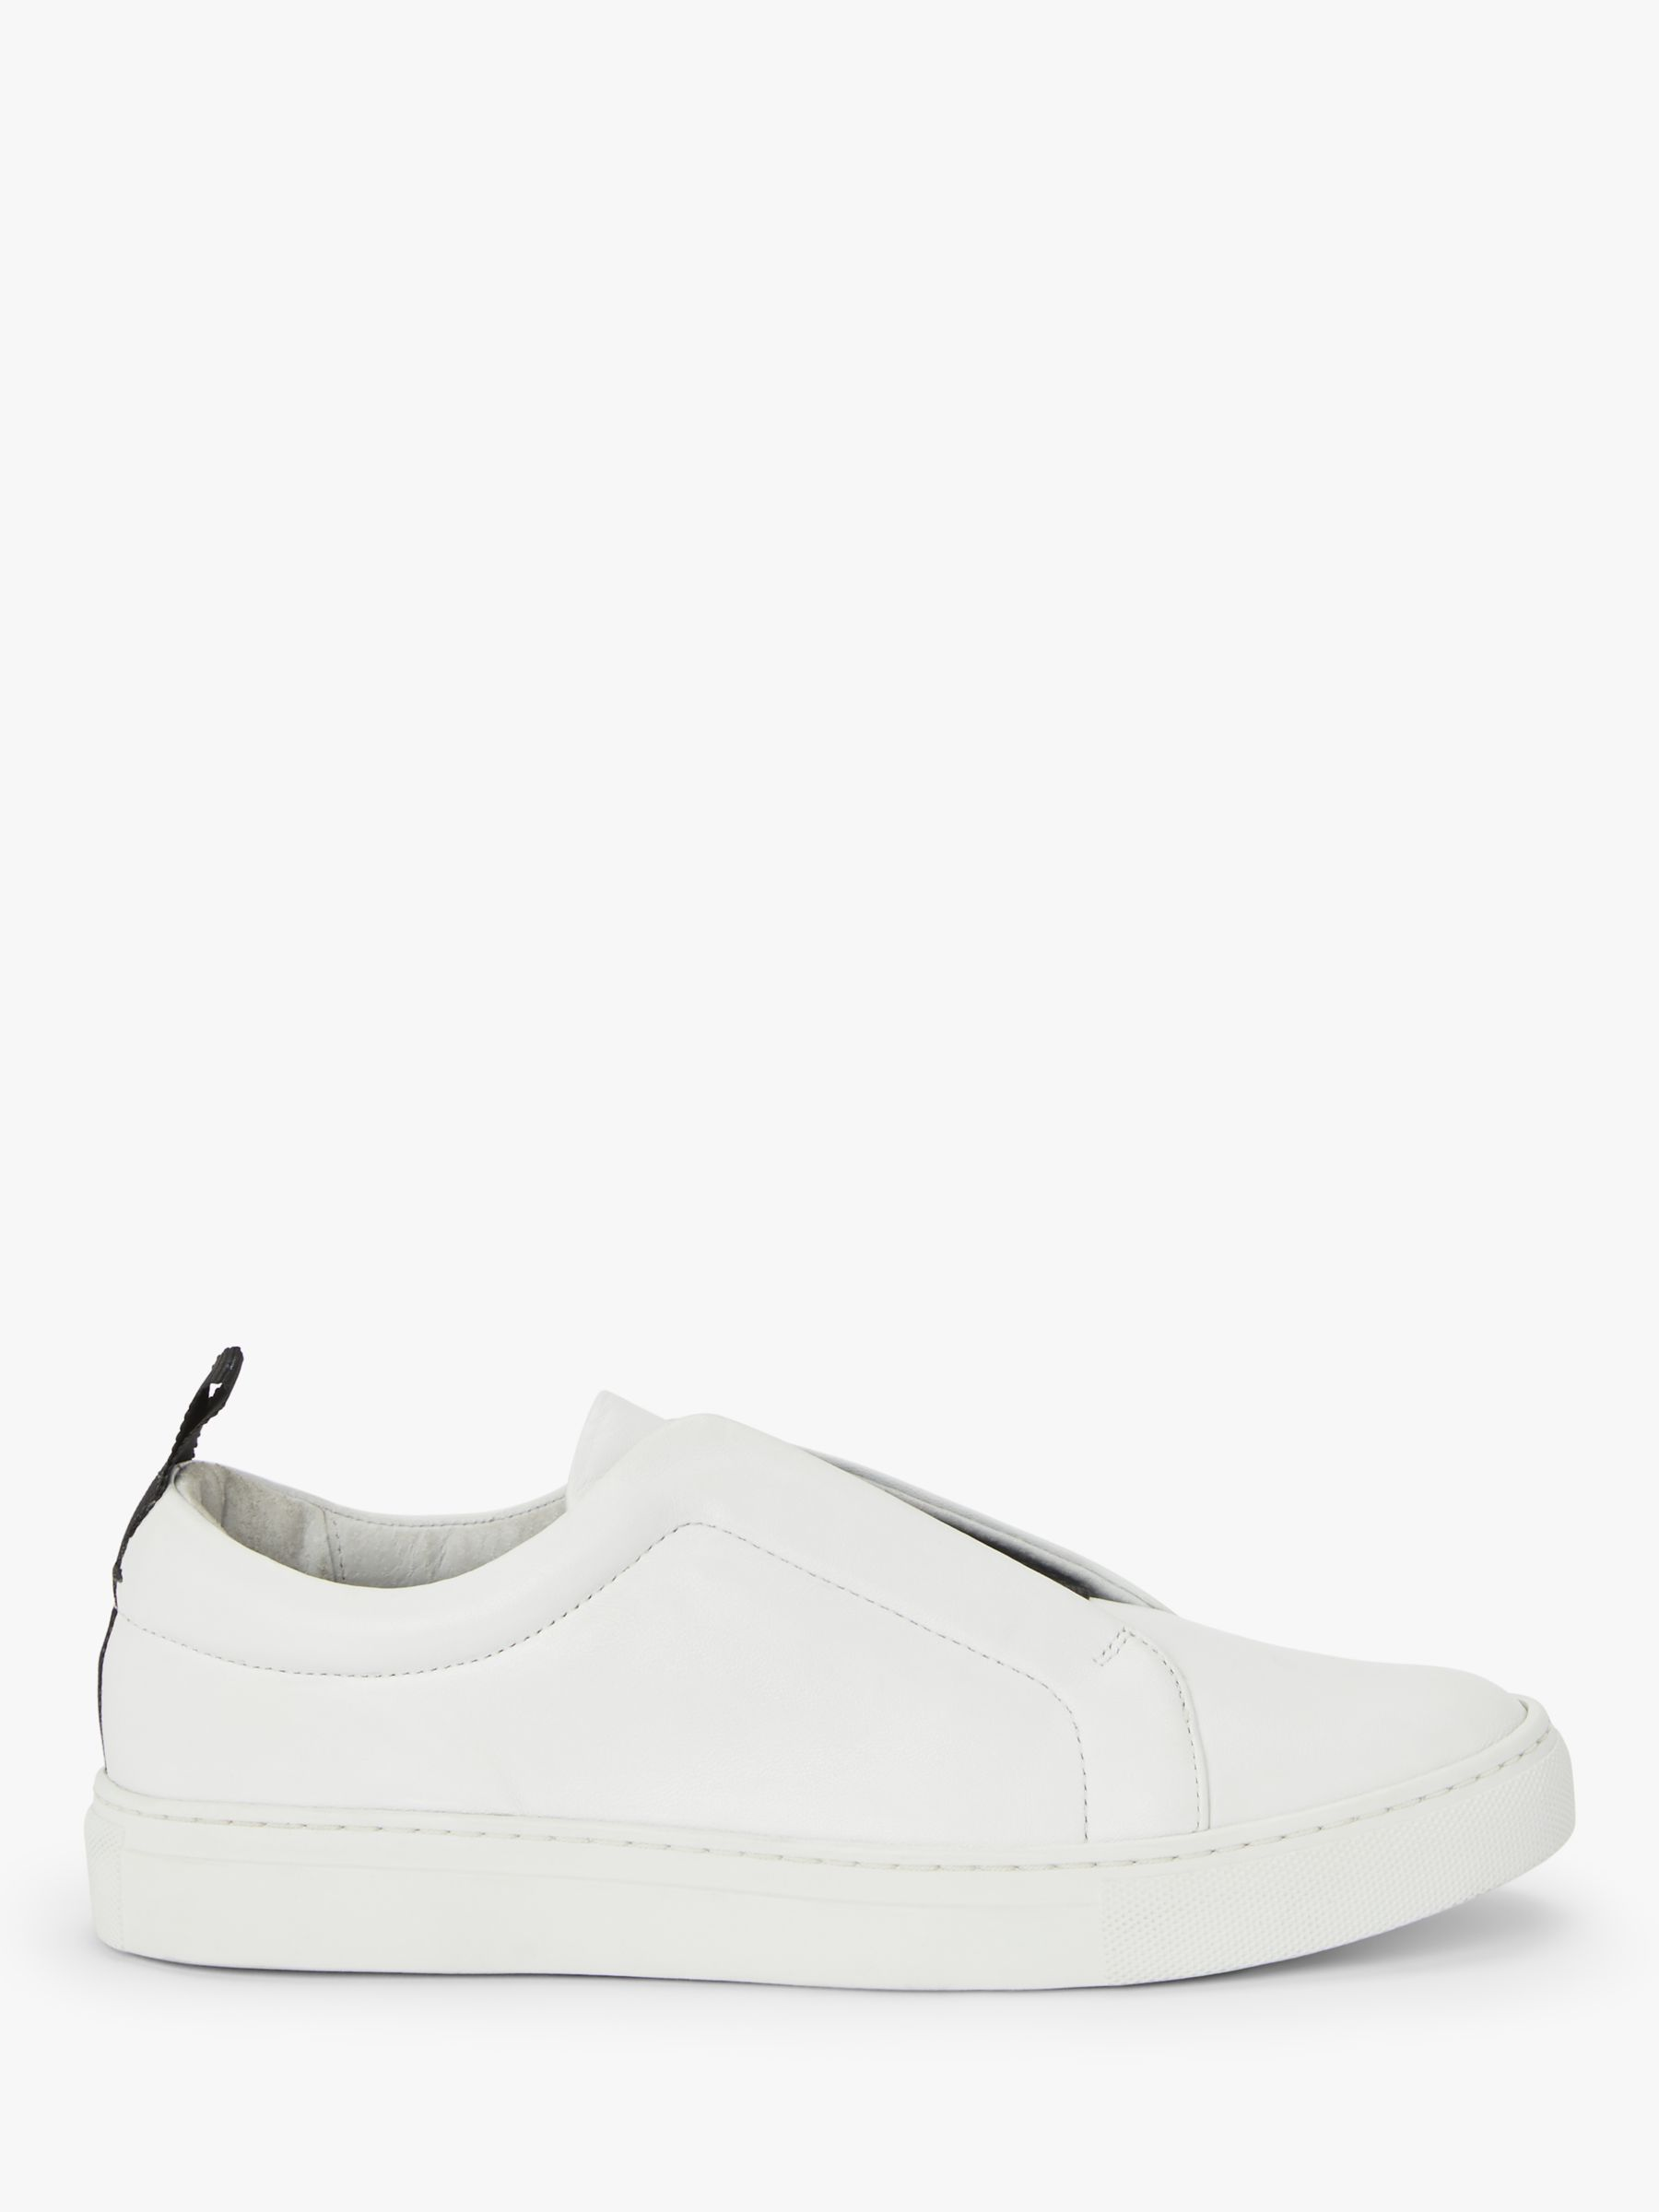 Buy Kin Enni Leather Slip On Trainers, White, 3 Online at johnlewis.com